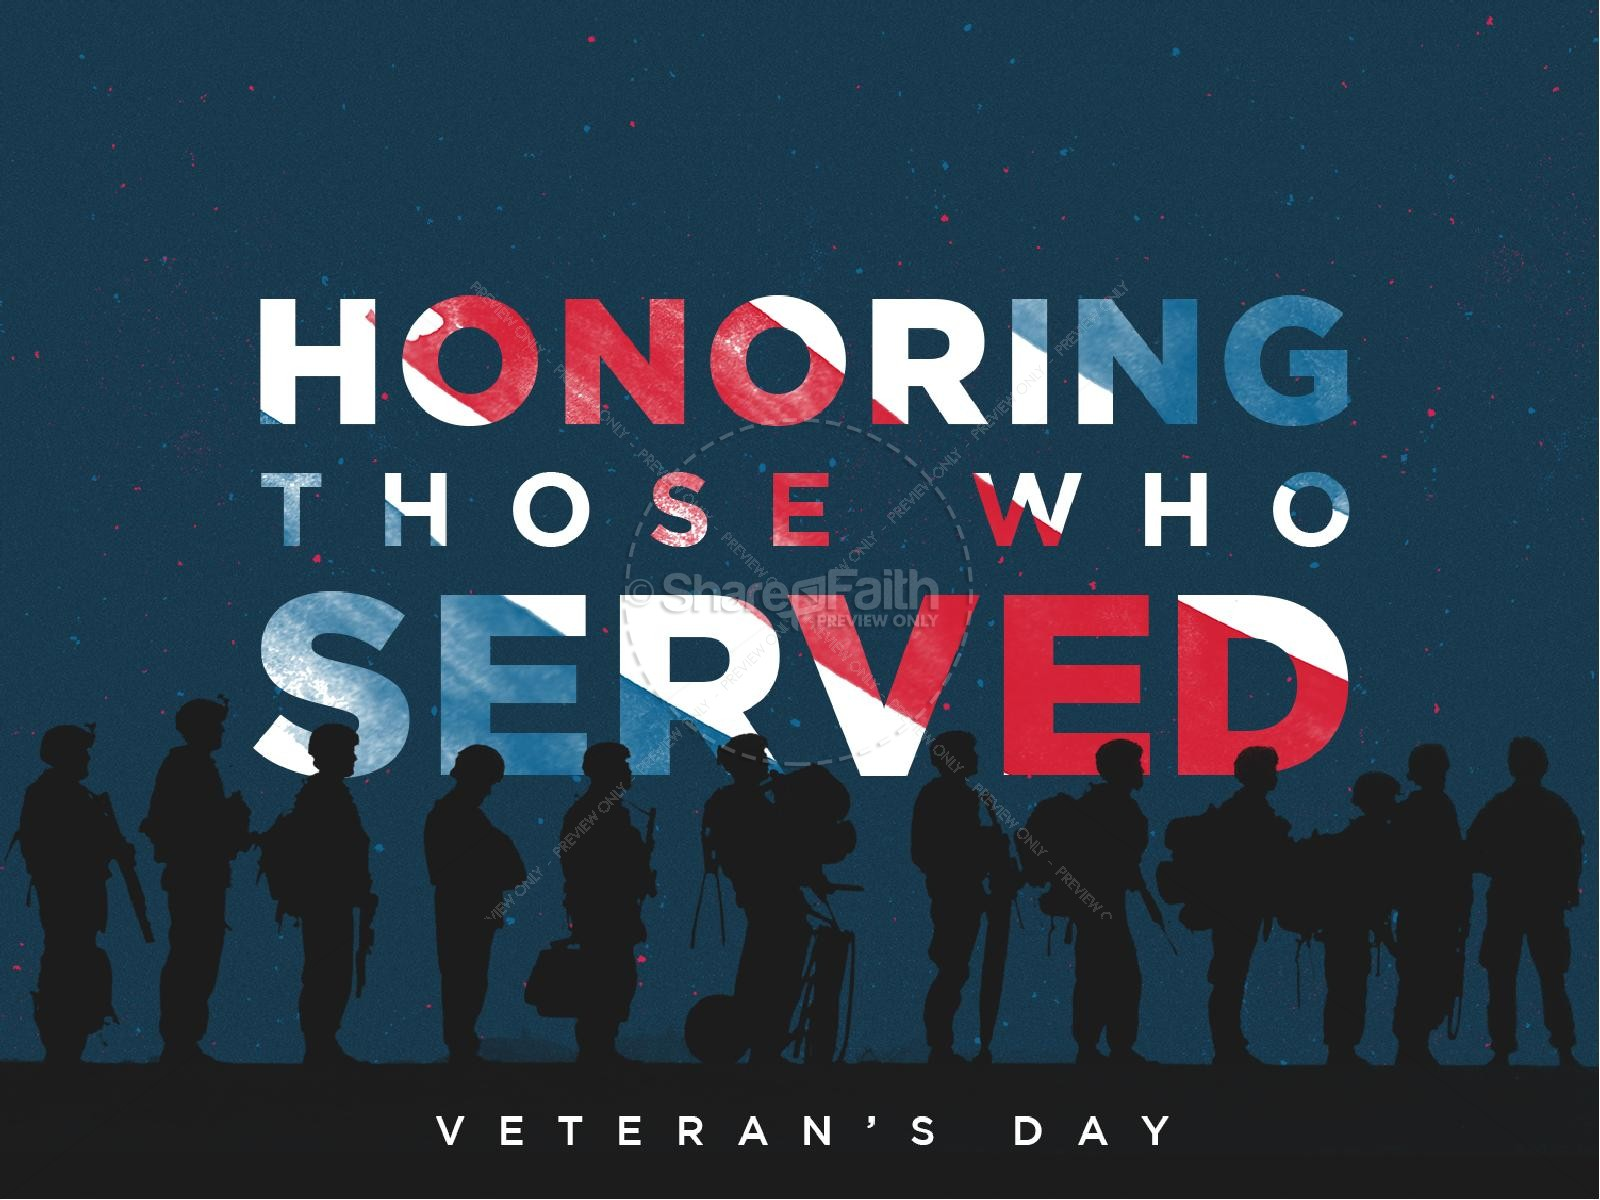 Microsoft Wallpaper Slideshows Fall Veterans Day Honoring Those Who Served Church Powerpoint